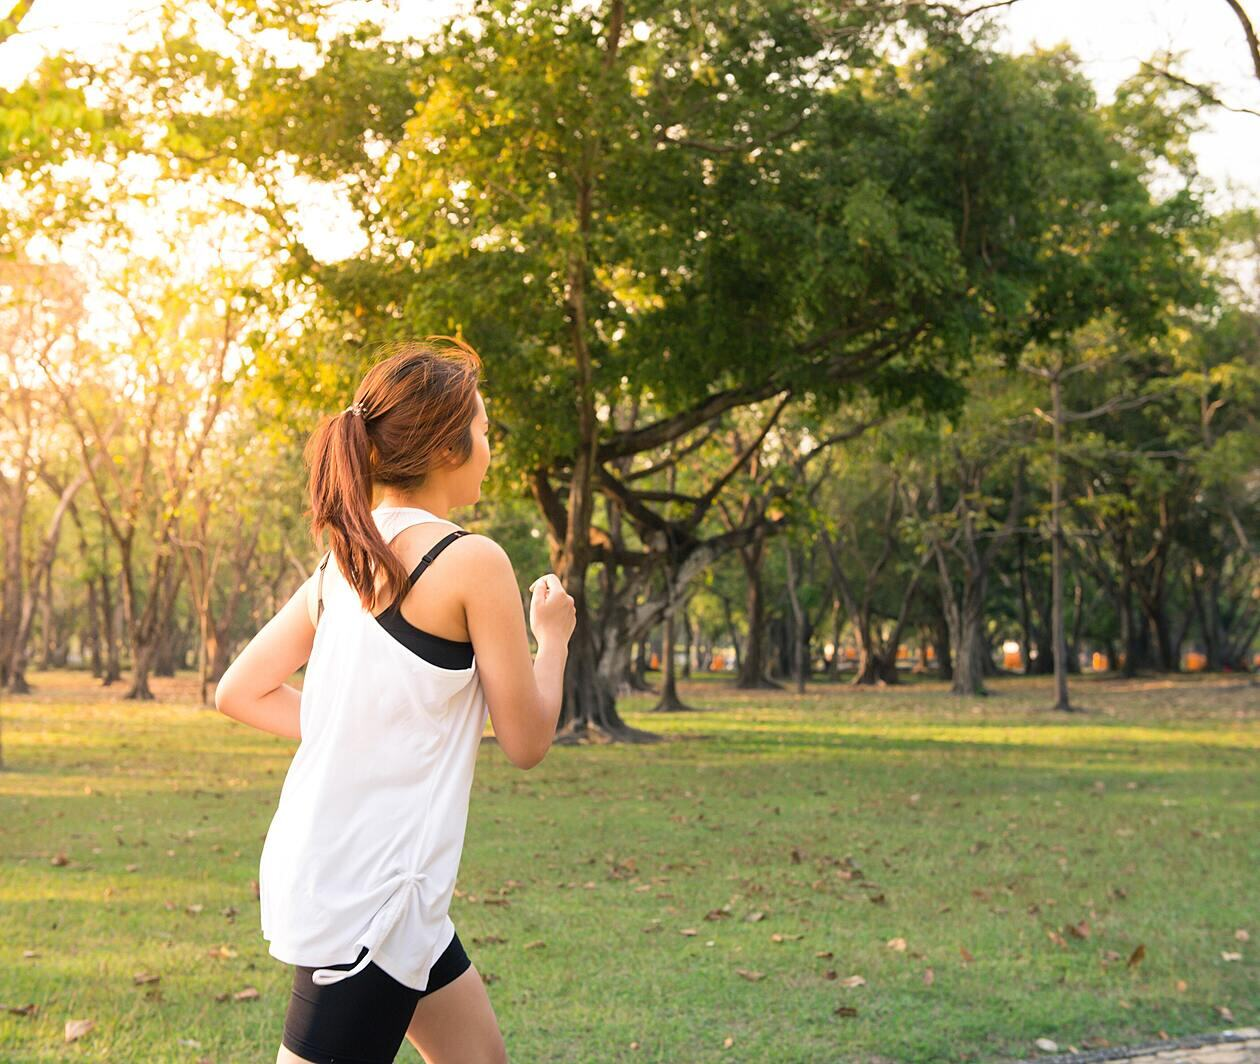 Personal Trainer's Toolkit: Build an Outdoor Fitness Business